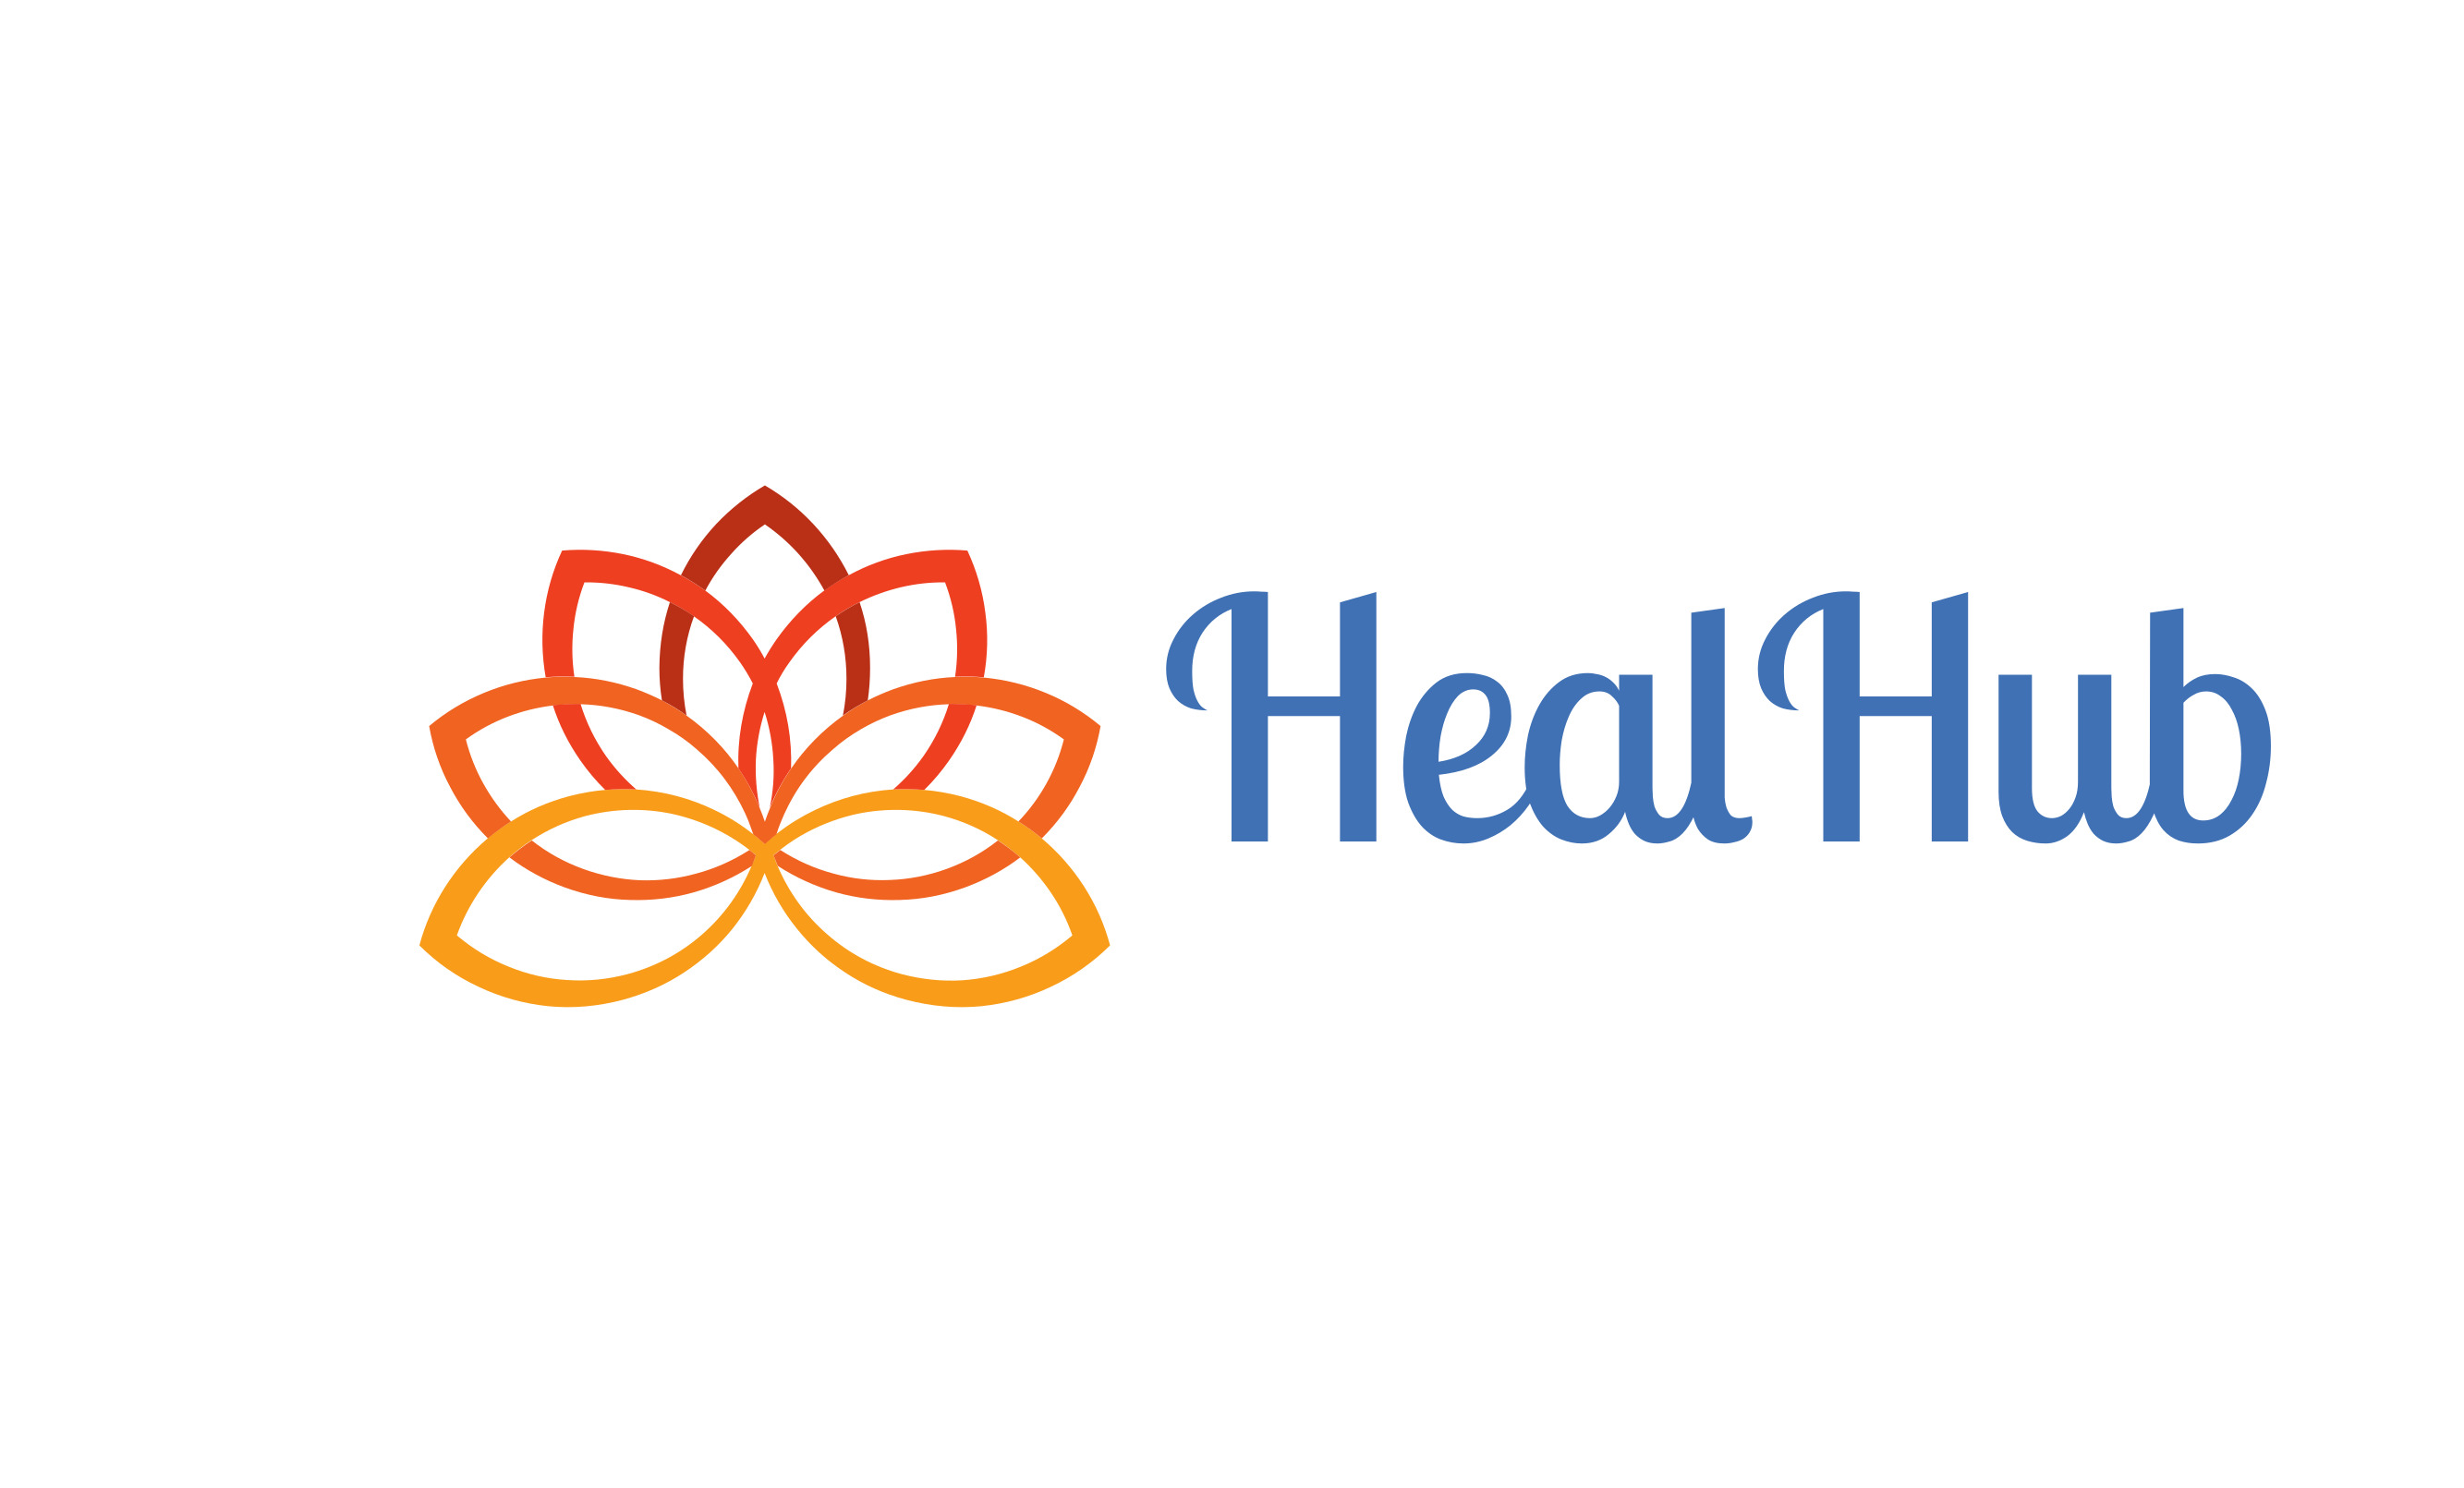 Healhub Commits To Ending Worldwide Suffering, Makes Mental Health, Holistic Healing Videos And Ebook Resources Free